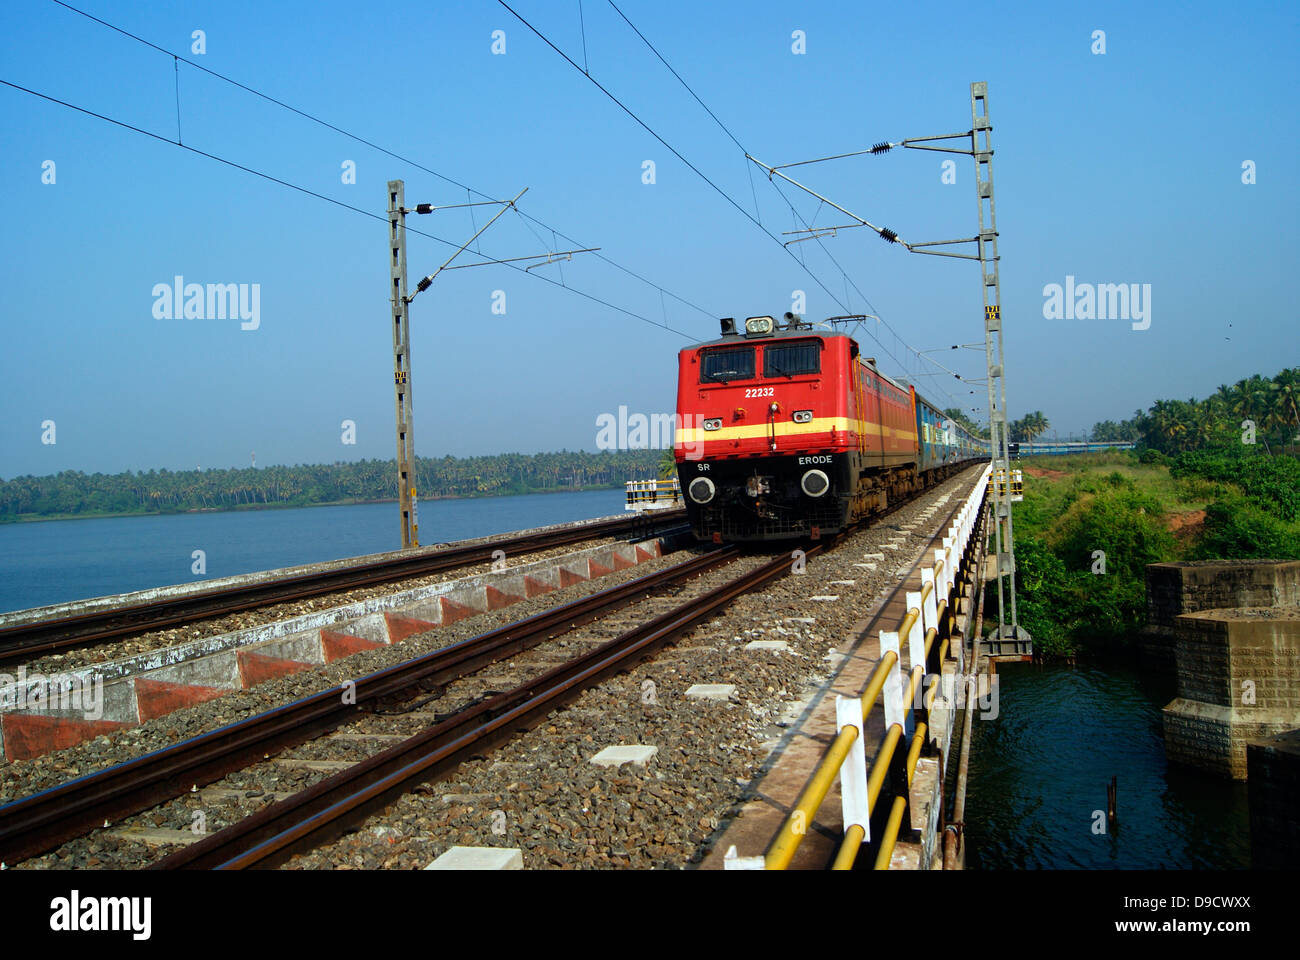 Indian Railways Electric Train Journey above the Backwaters of Kerala , India Stock Photo